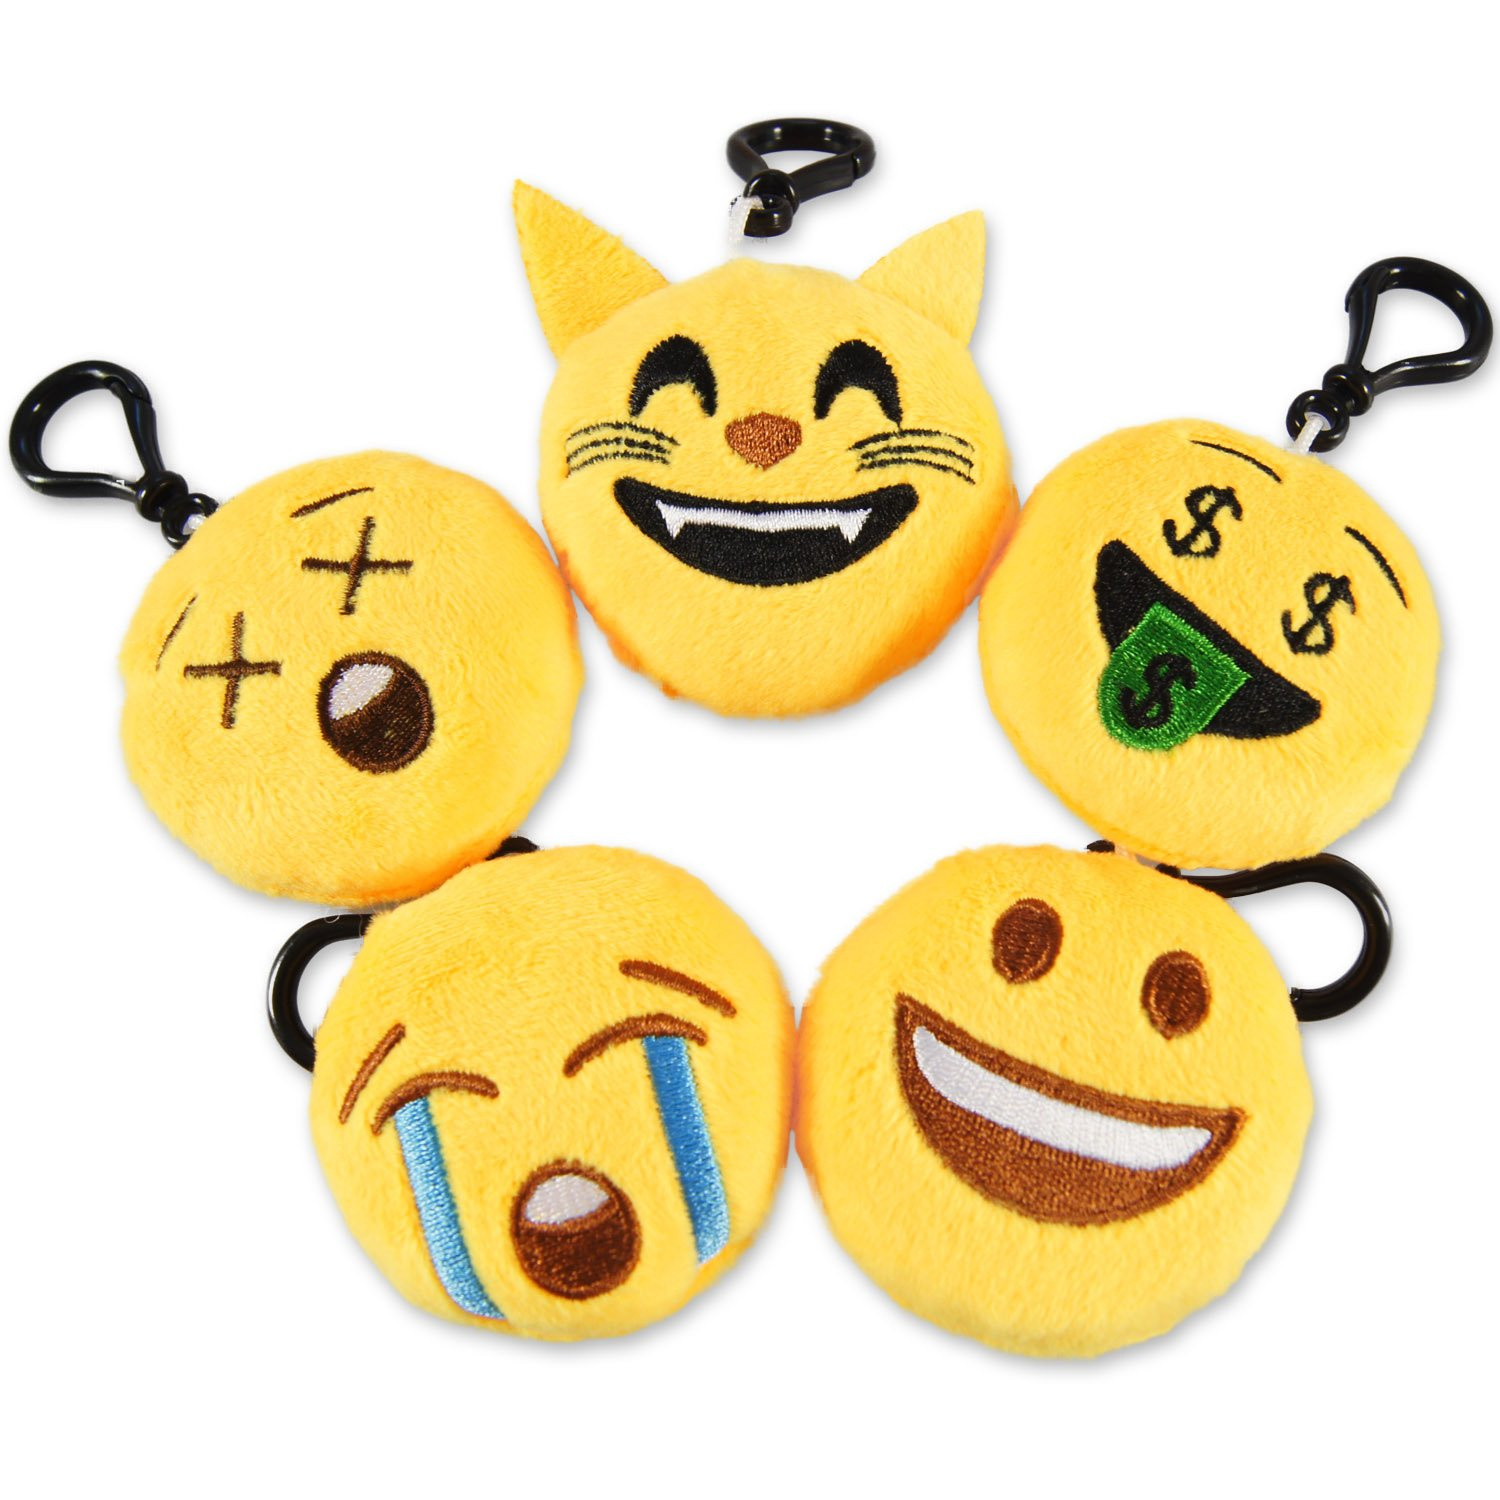 Ivenf Pack of 50 5cm/2'' Emoji Poop Plush Keychain Birthday Party Favors Supplies Mini Pillows Set, Emoticon Backpack Clips, Goodie Bag Stuffers Pinata Fillers Novelty Gifts Toys Prizes for Kids by Ivenf (Image #2)